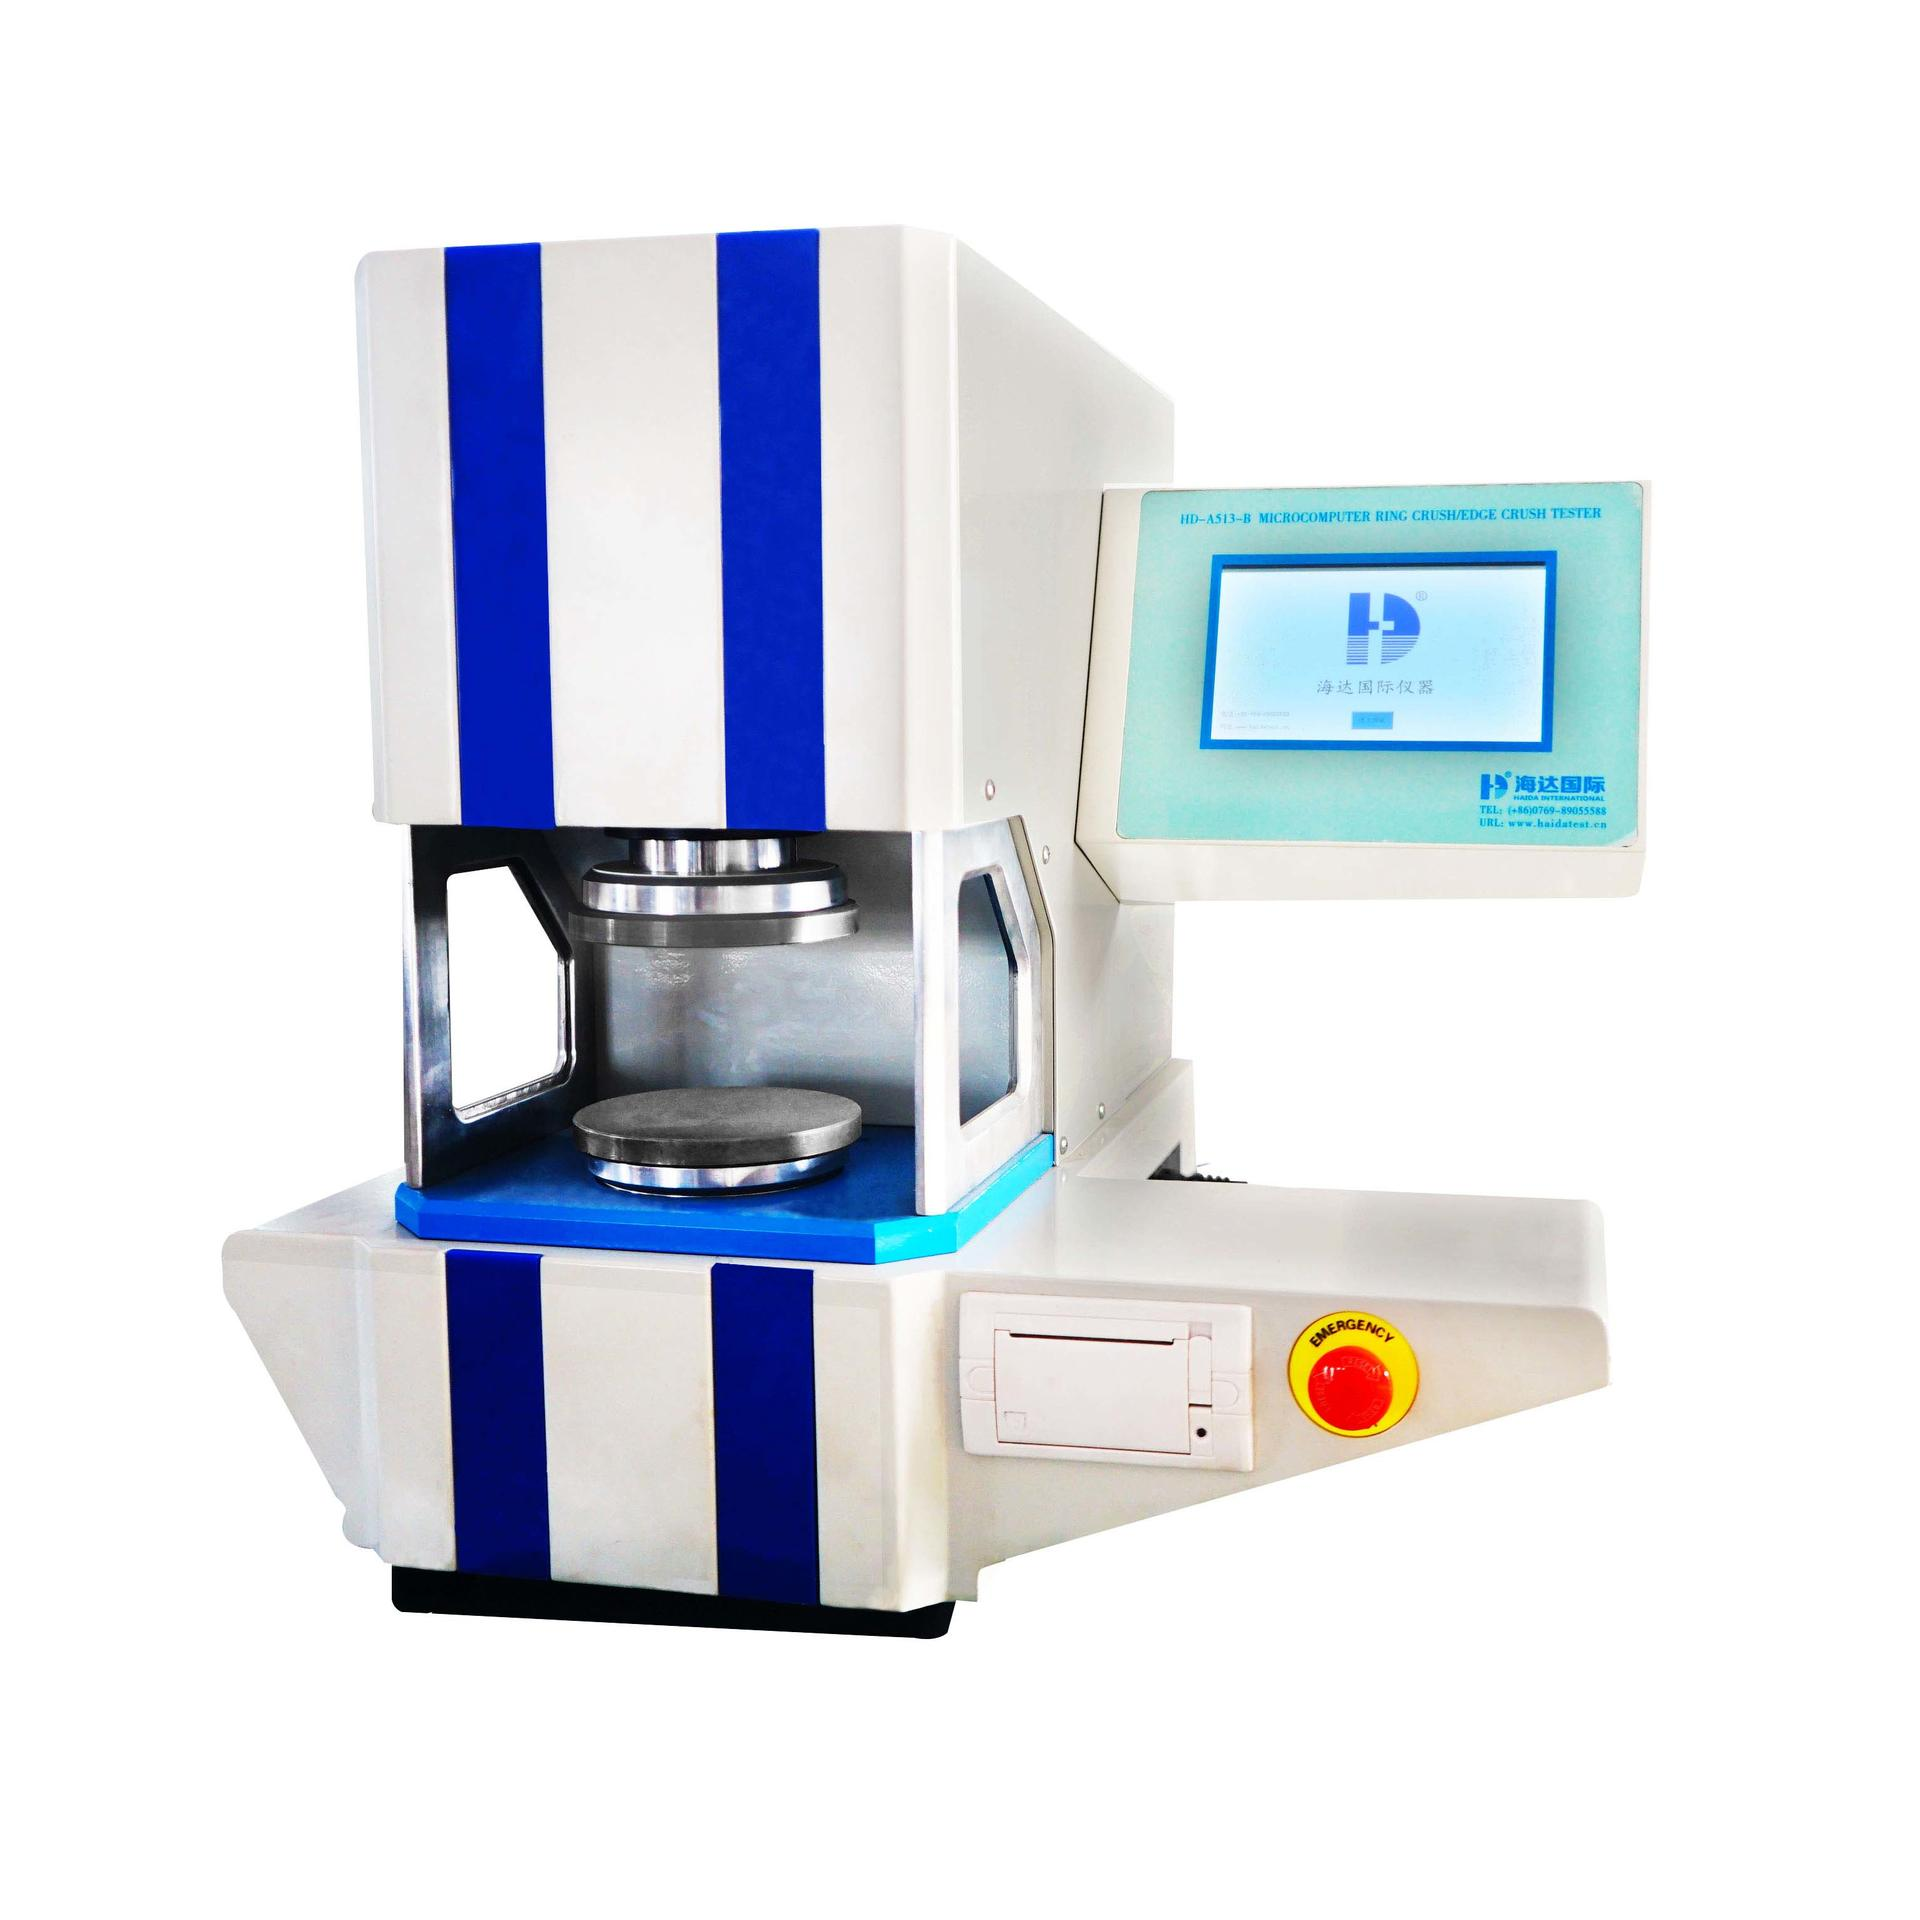 Crushing Strength Testing Machine For Paper Products HD-A513-B